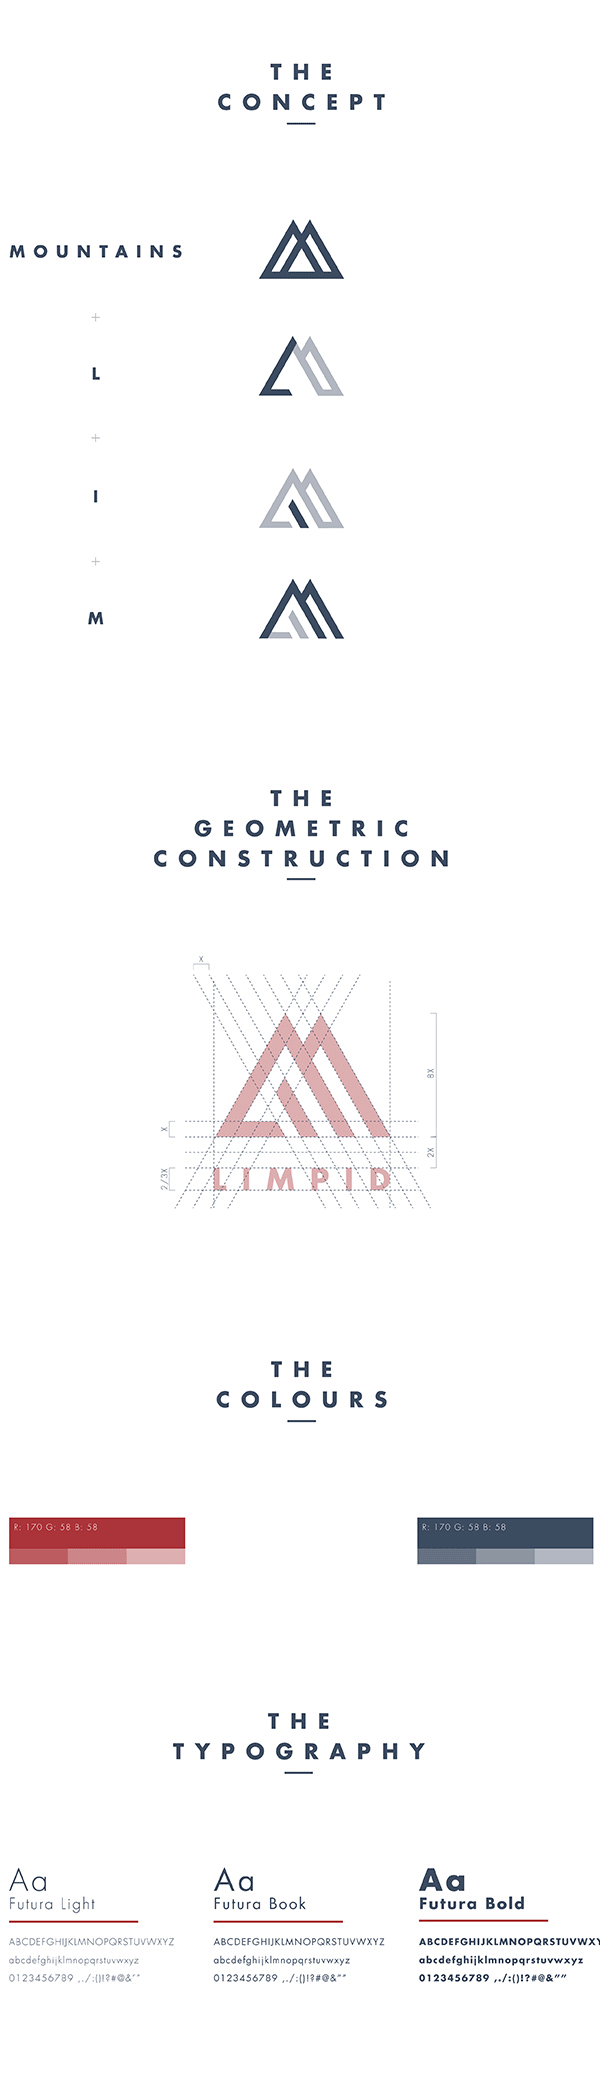 LIMPID Skis - Logo design and rebranding by Paolo Pettigiani.